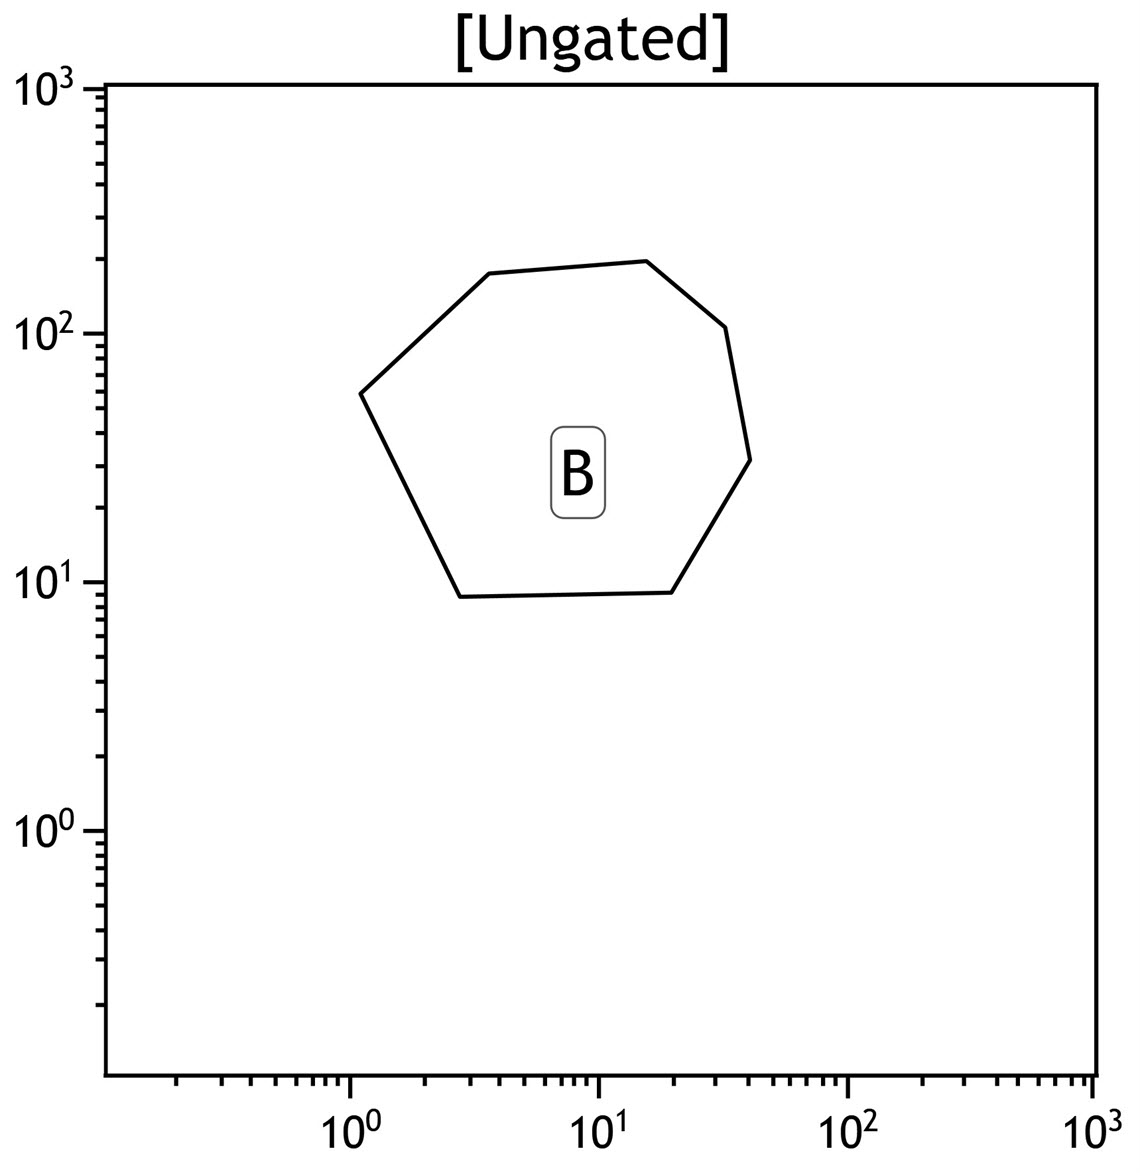 Kaluza plot showing a polygon gate applied